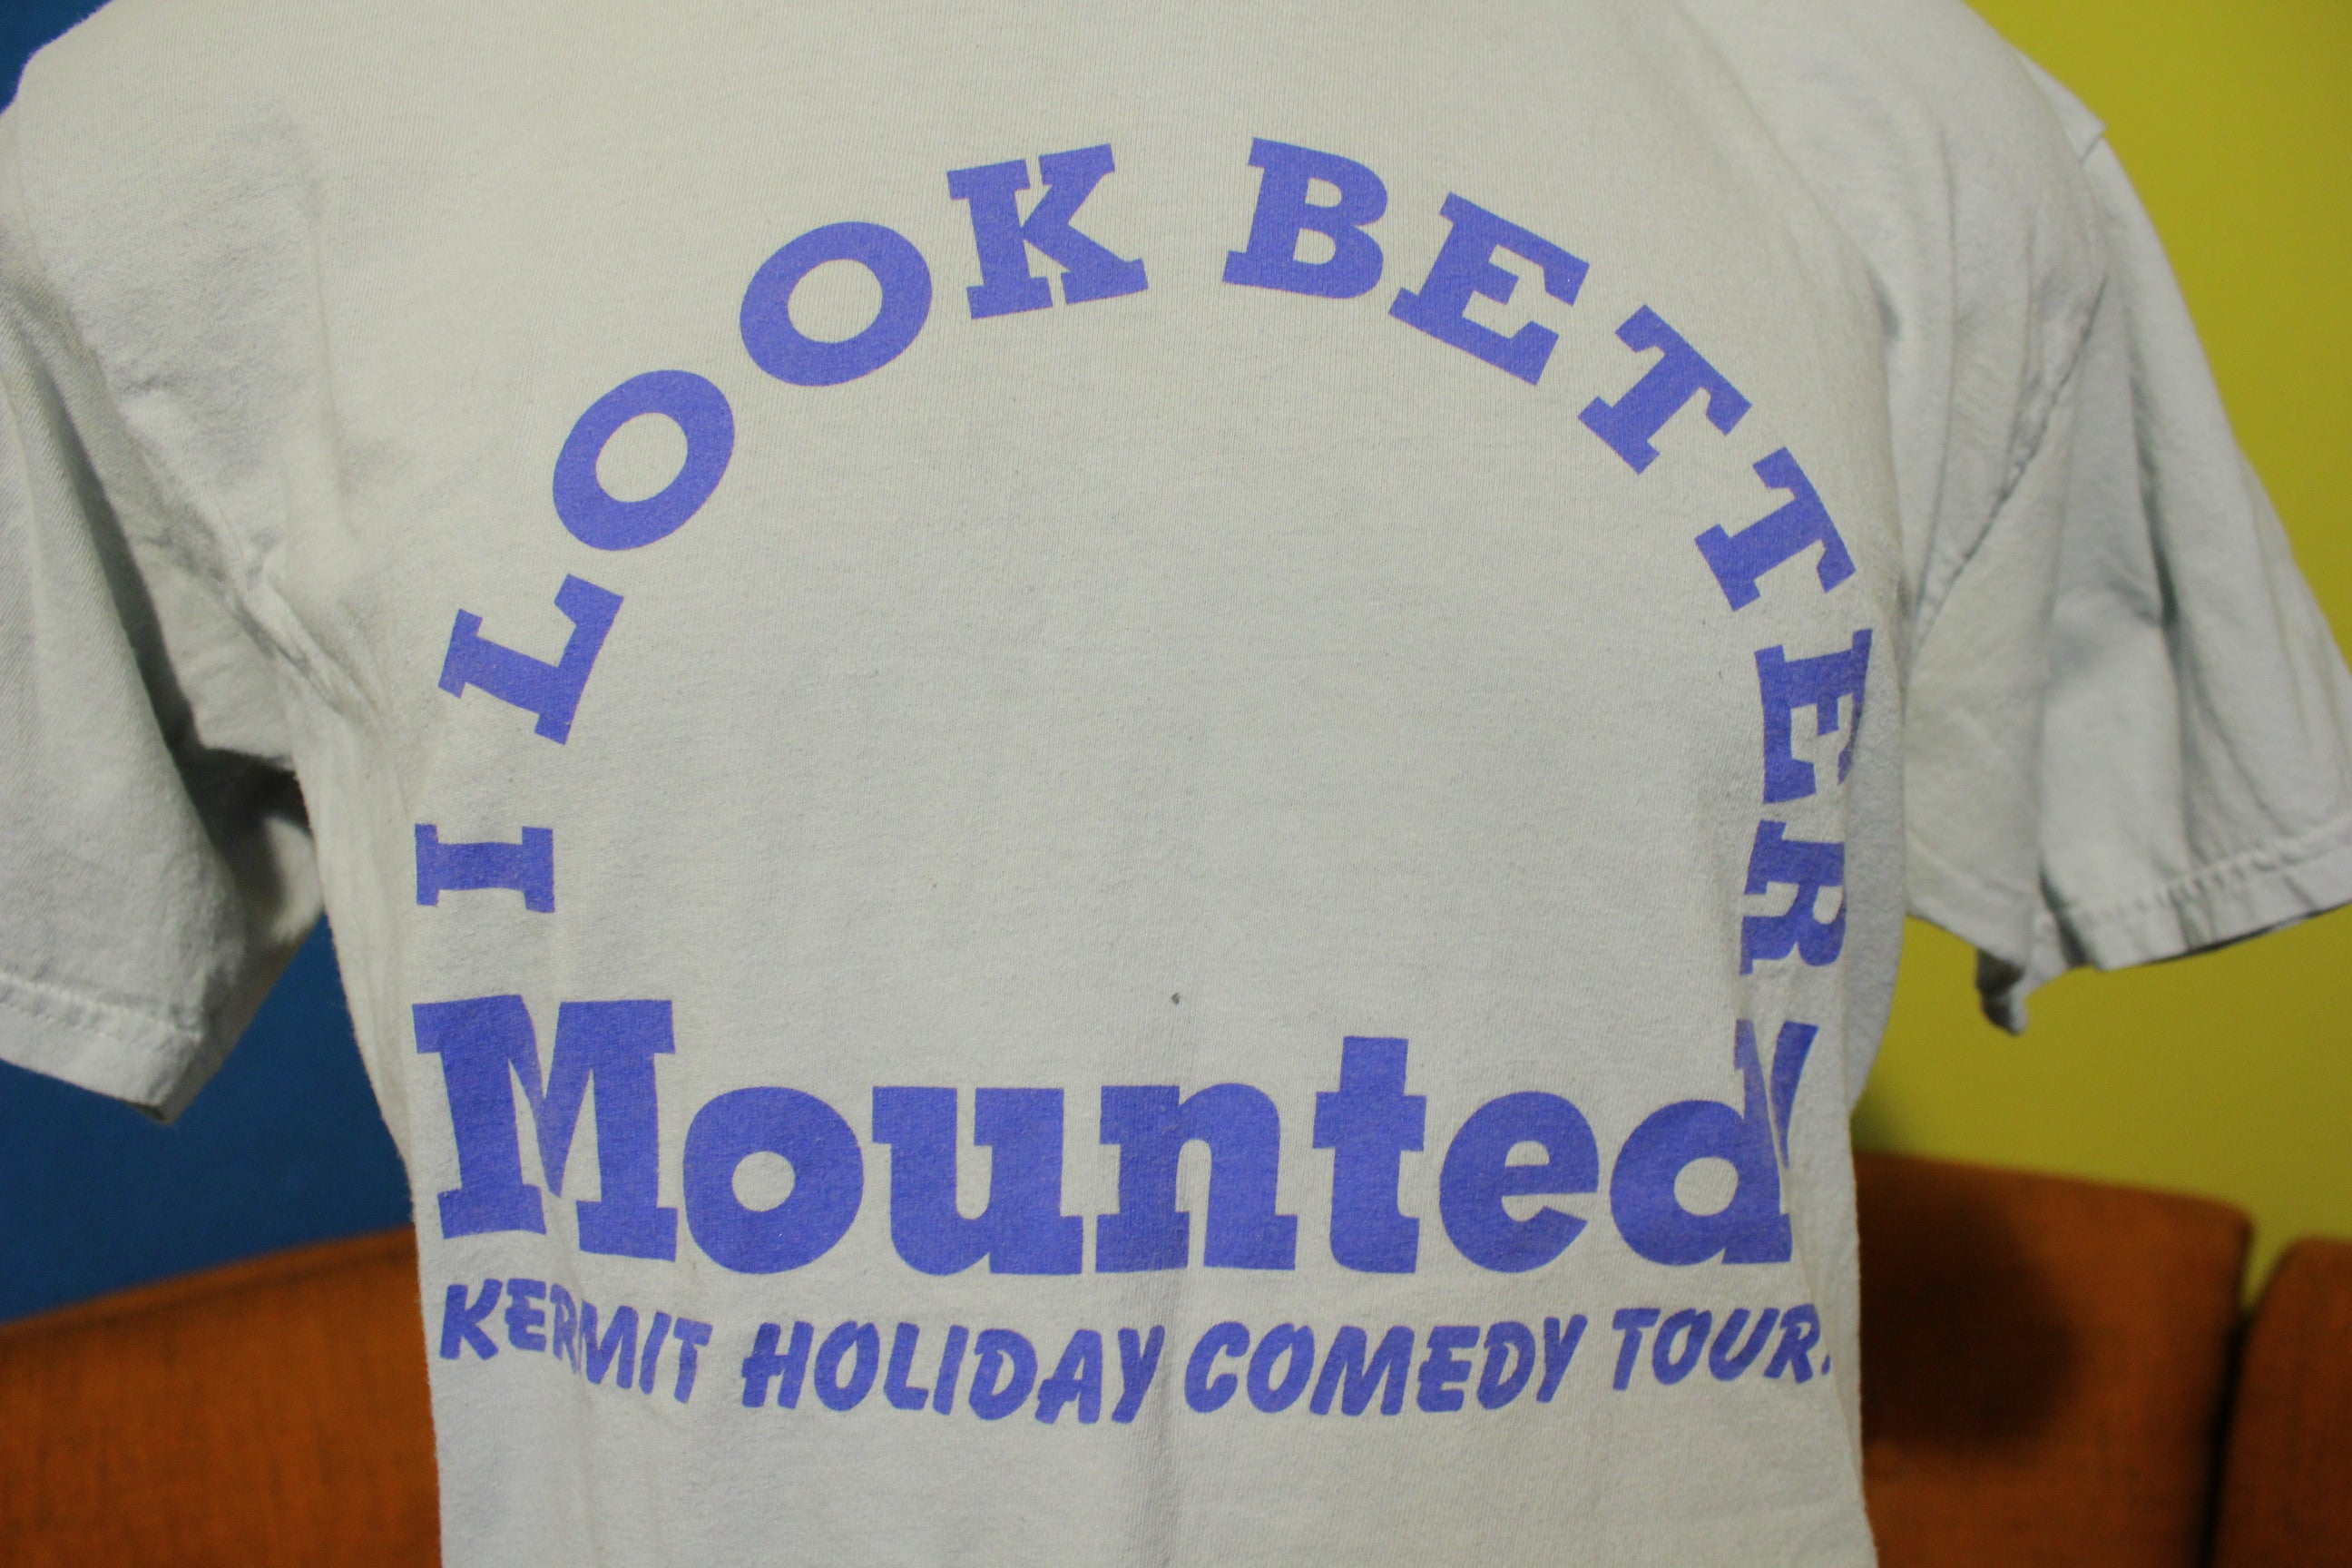 Kermit Holiday Comedy Tour I Look Better Mounted Vintage T-Shirt Funny